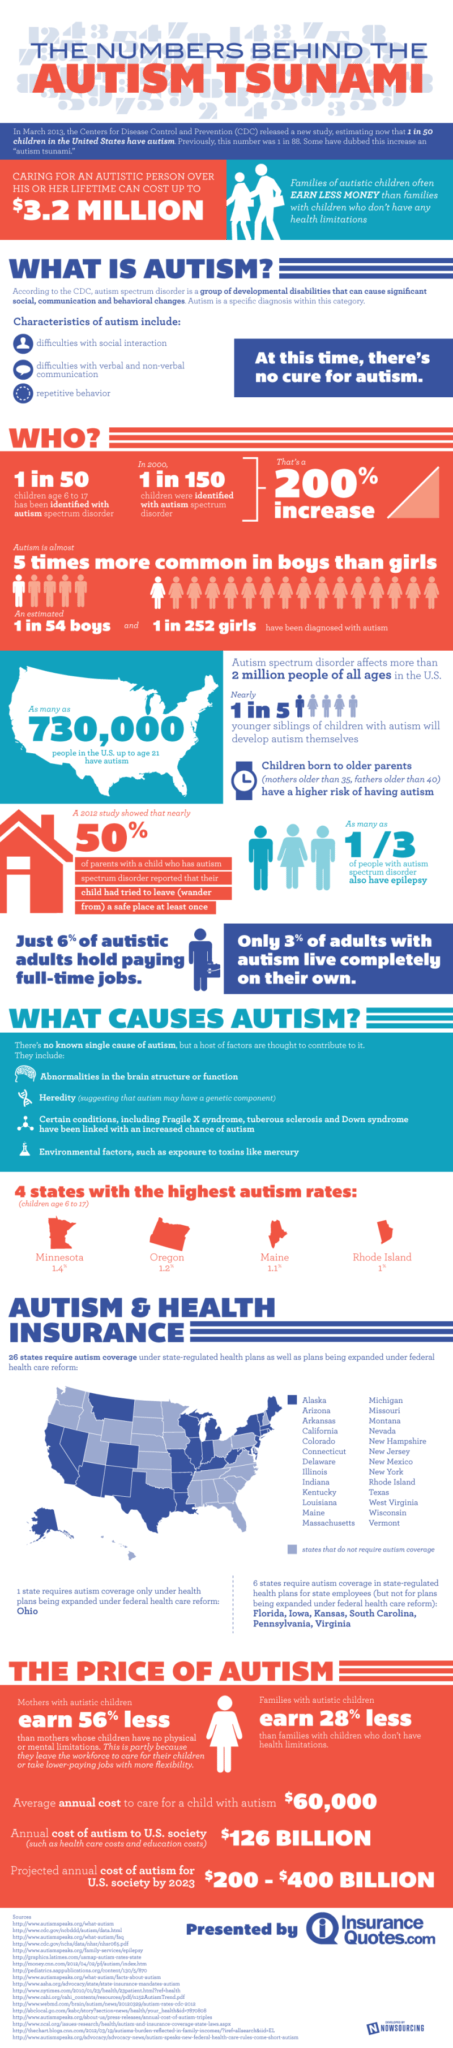 The numbers behind the autism tsunami [Infographic]